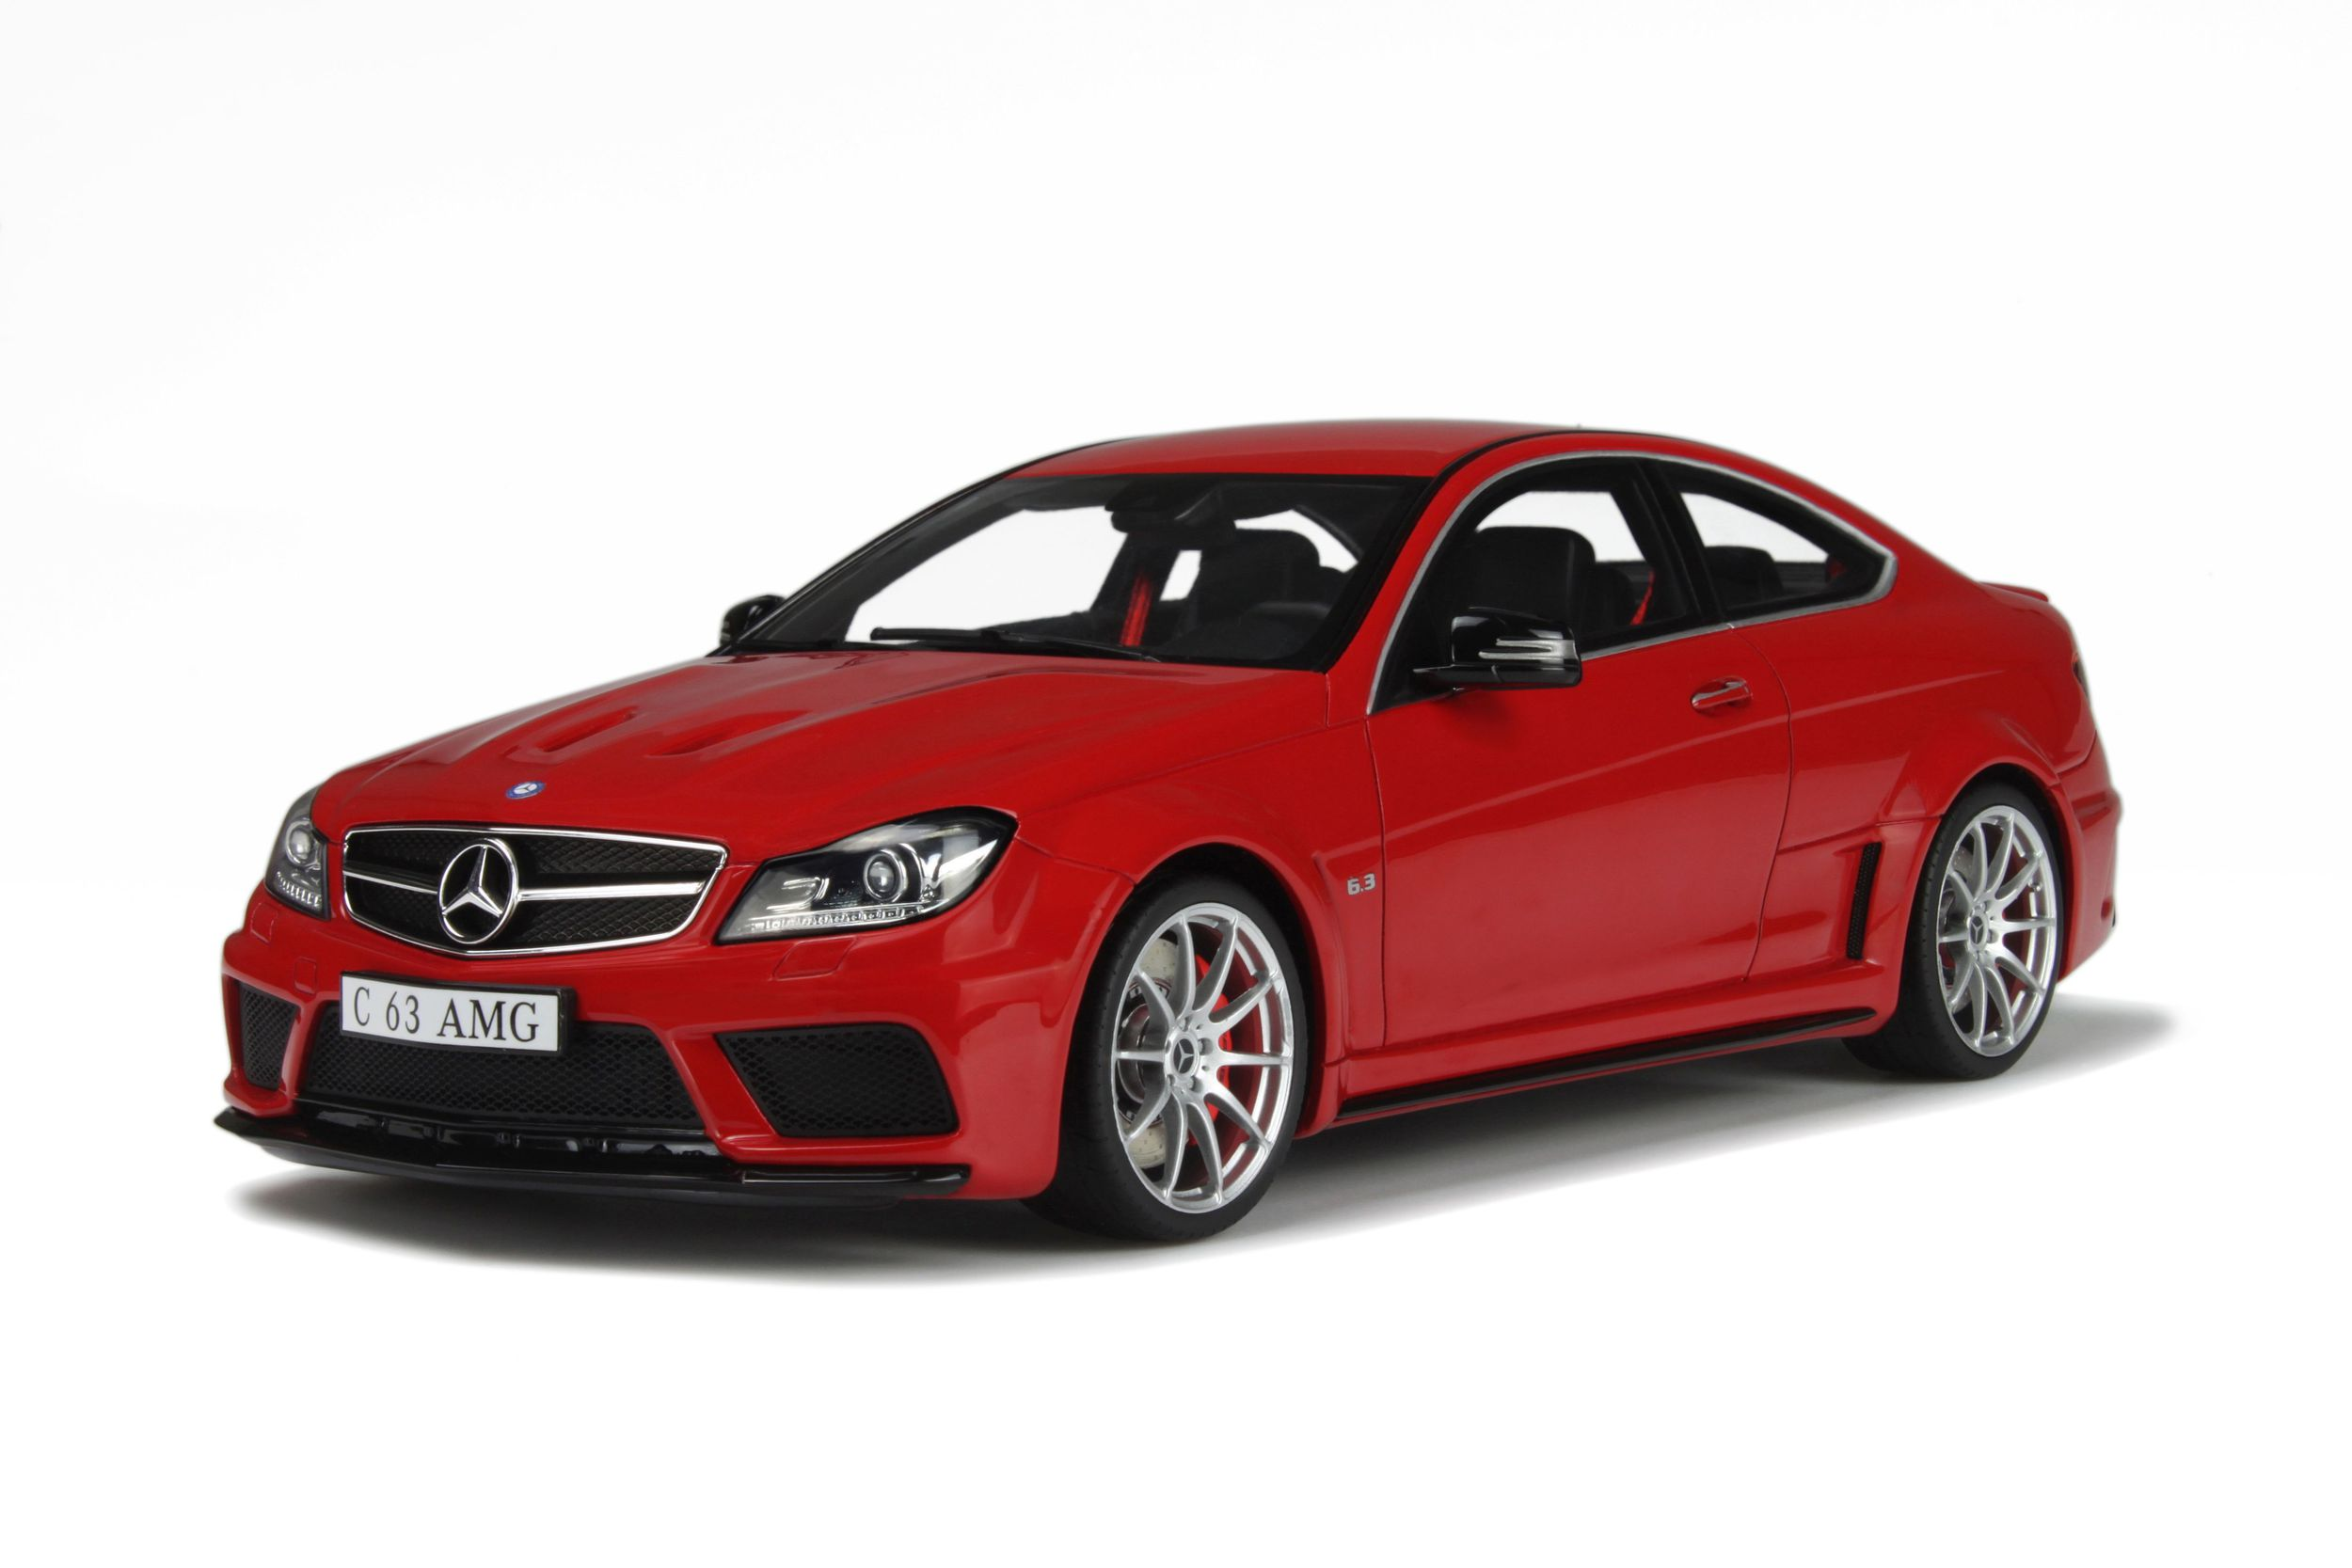 Mercedes Benz C63 AMG Black Series Model car collection